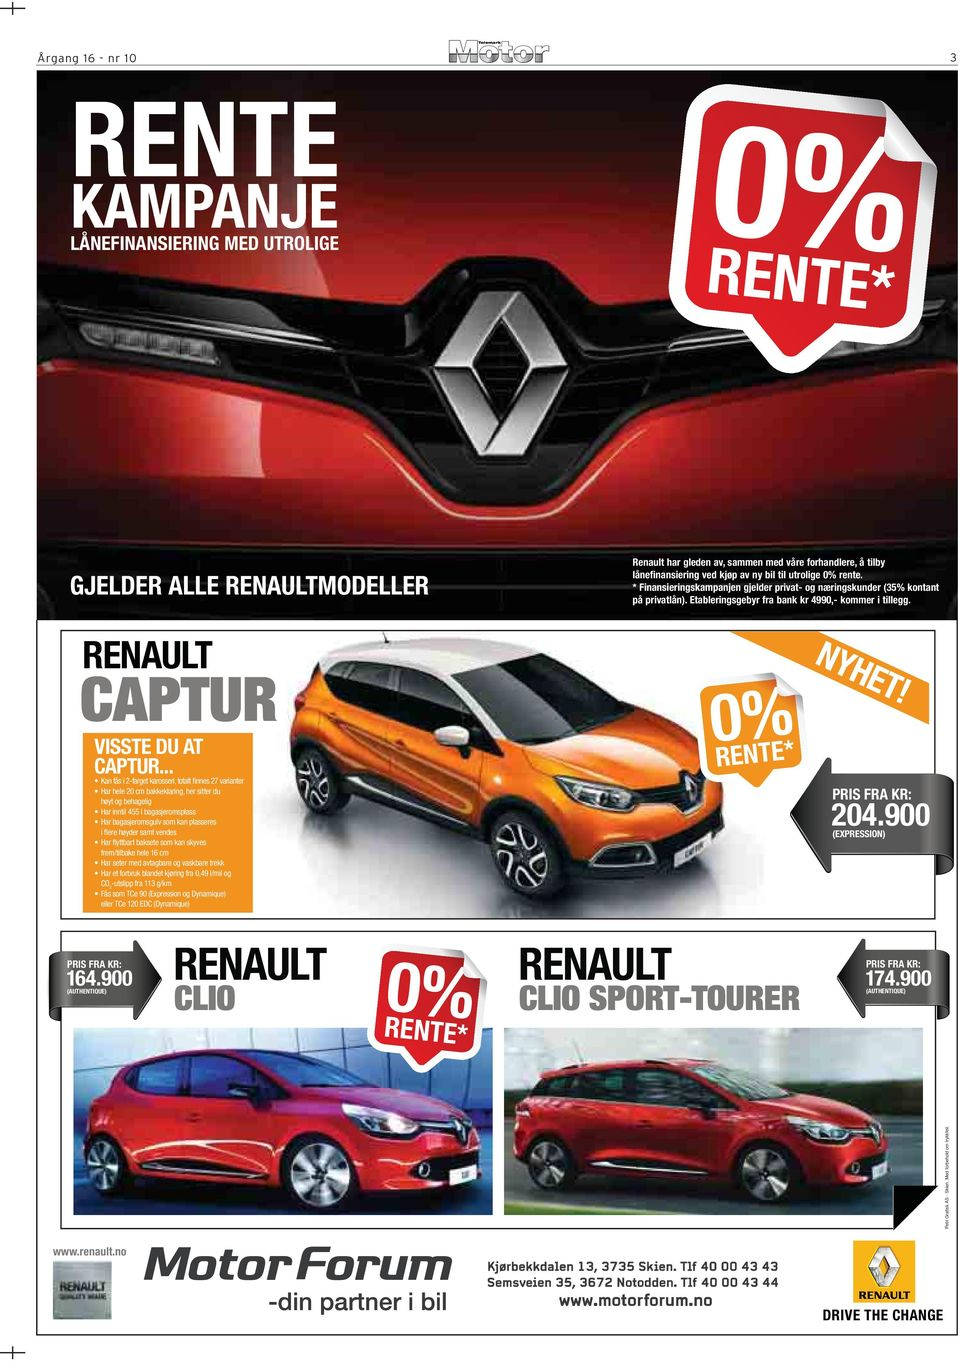 RENAULT CAPTUR 0REN% TE* VISSTE DU AT CAPTUR.